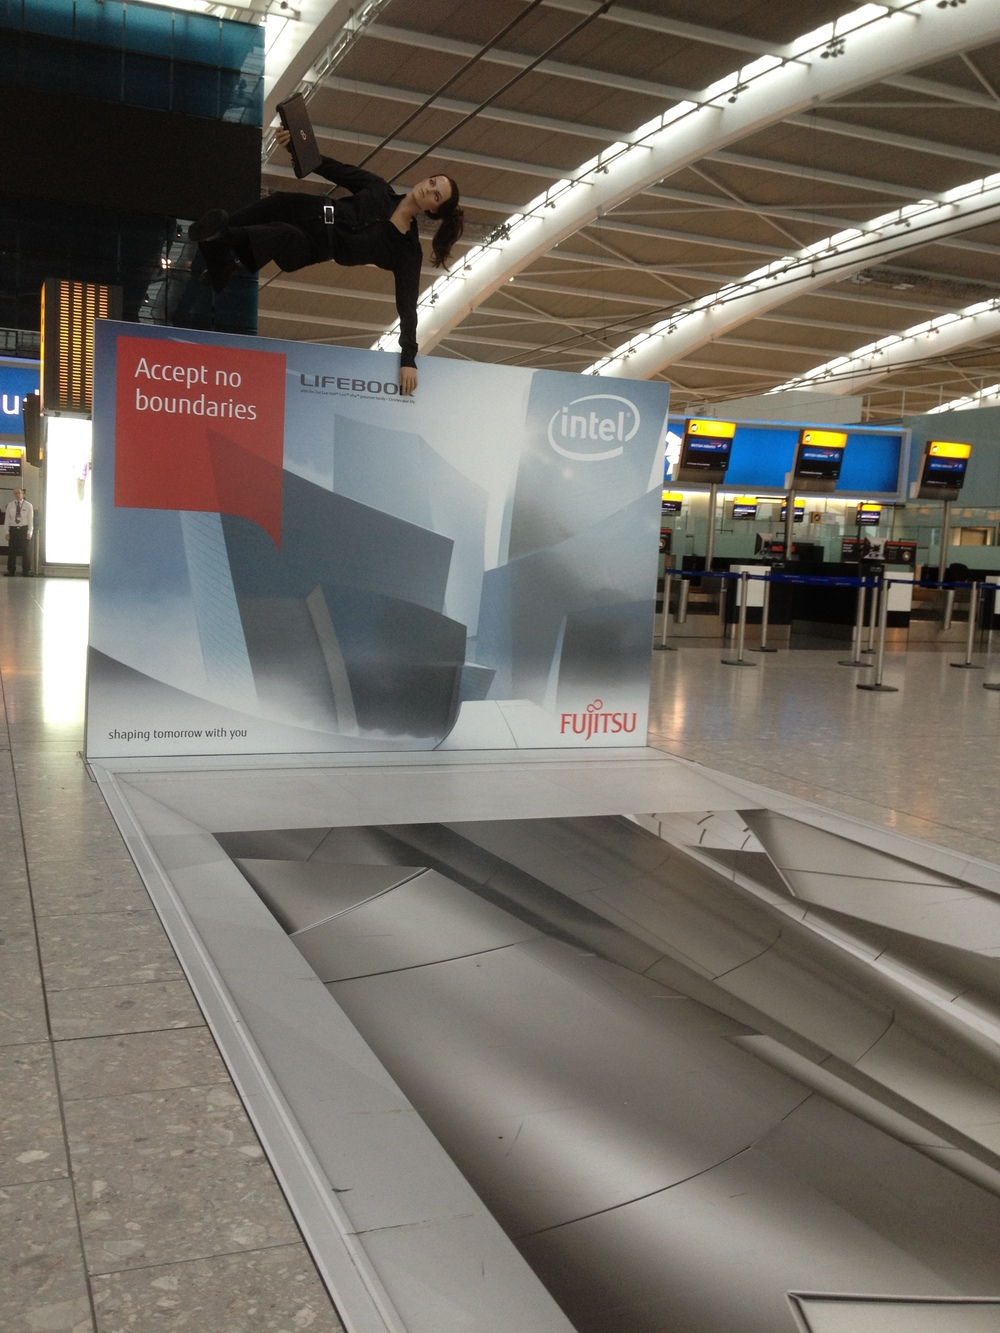 Installation in Heathrow Airport